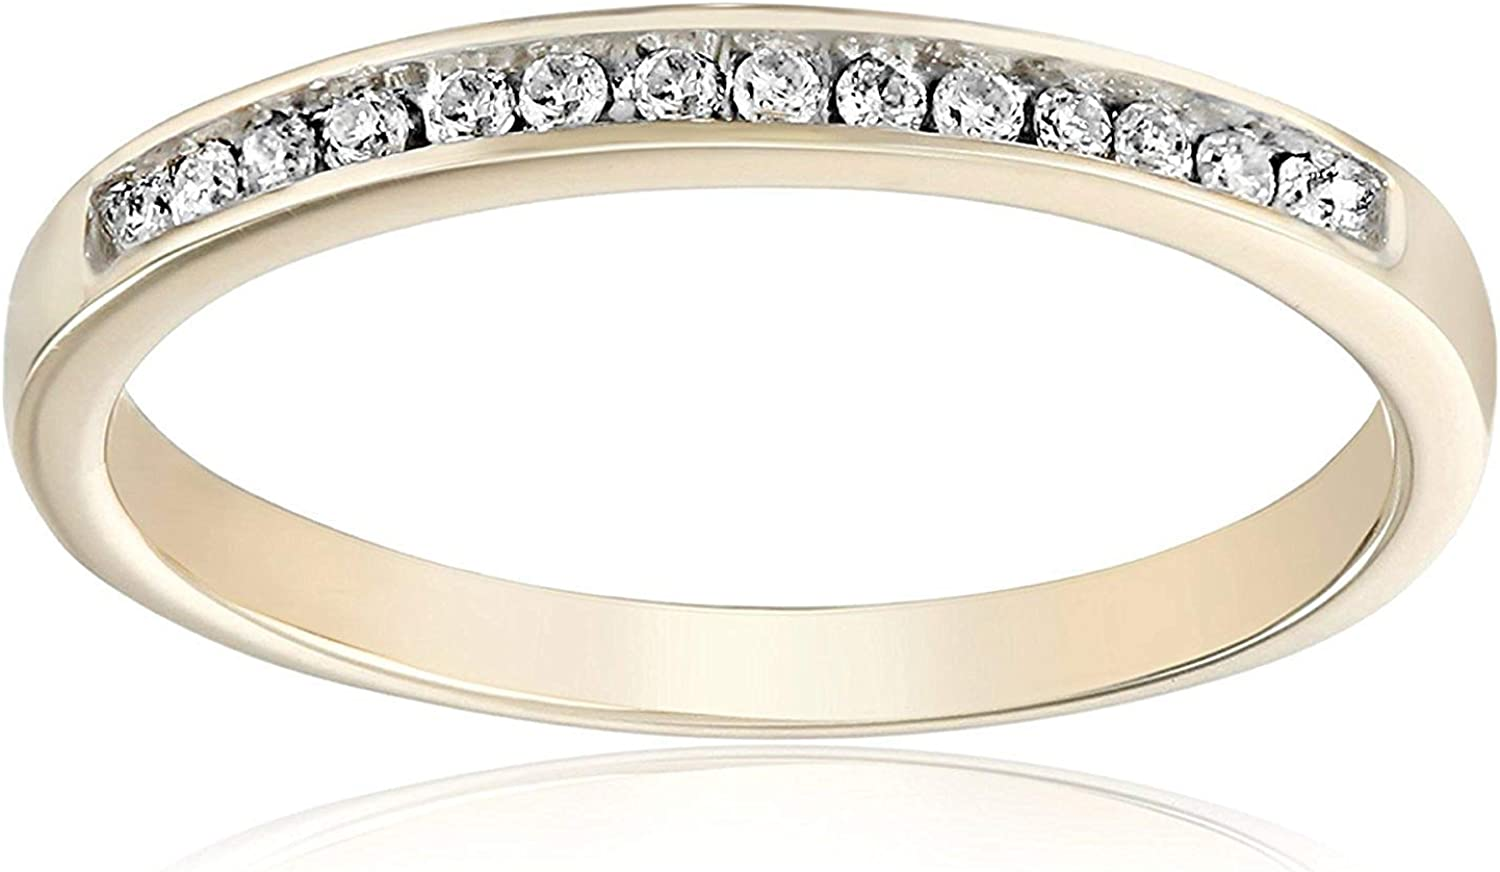 Diamond Wedding Band in 14K Pink Gold 1//10 cttw, G-H,I2-I3 Size-4